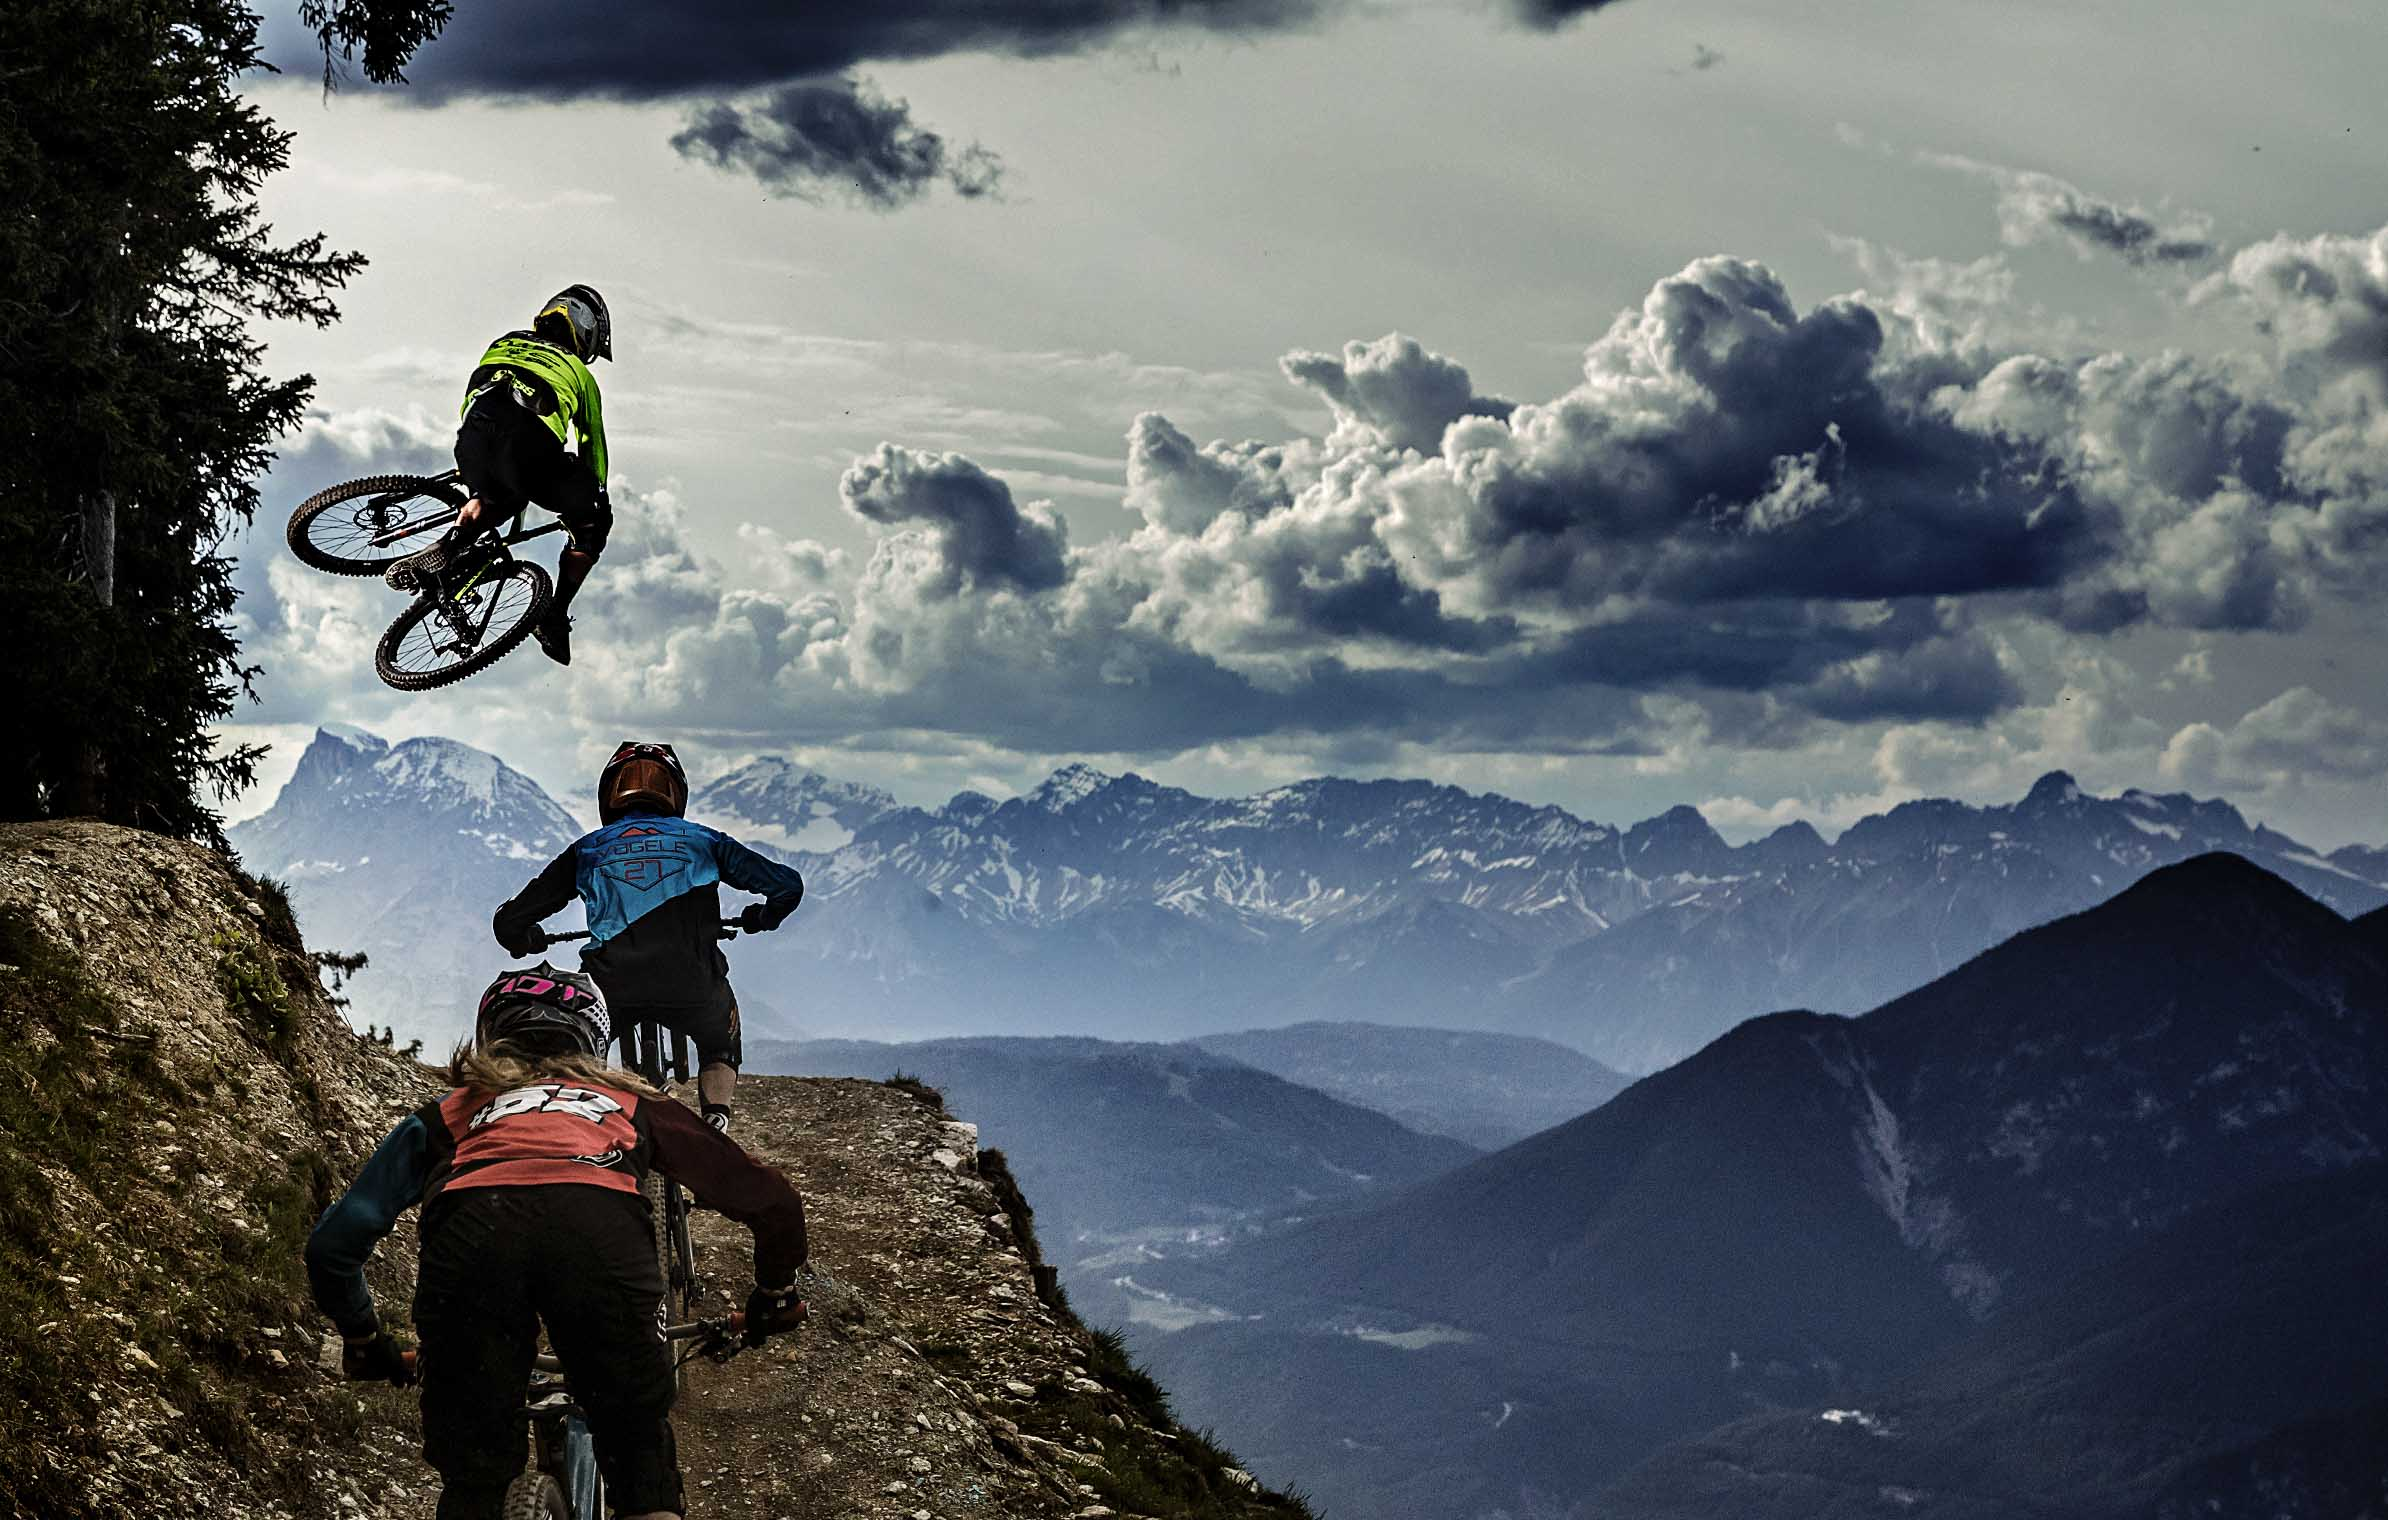 into_the_wild_bike_mountain_adventure_innsbruck_one_footer_matt_walker